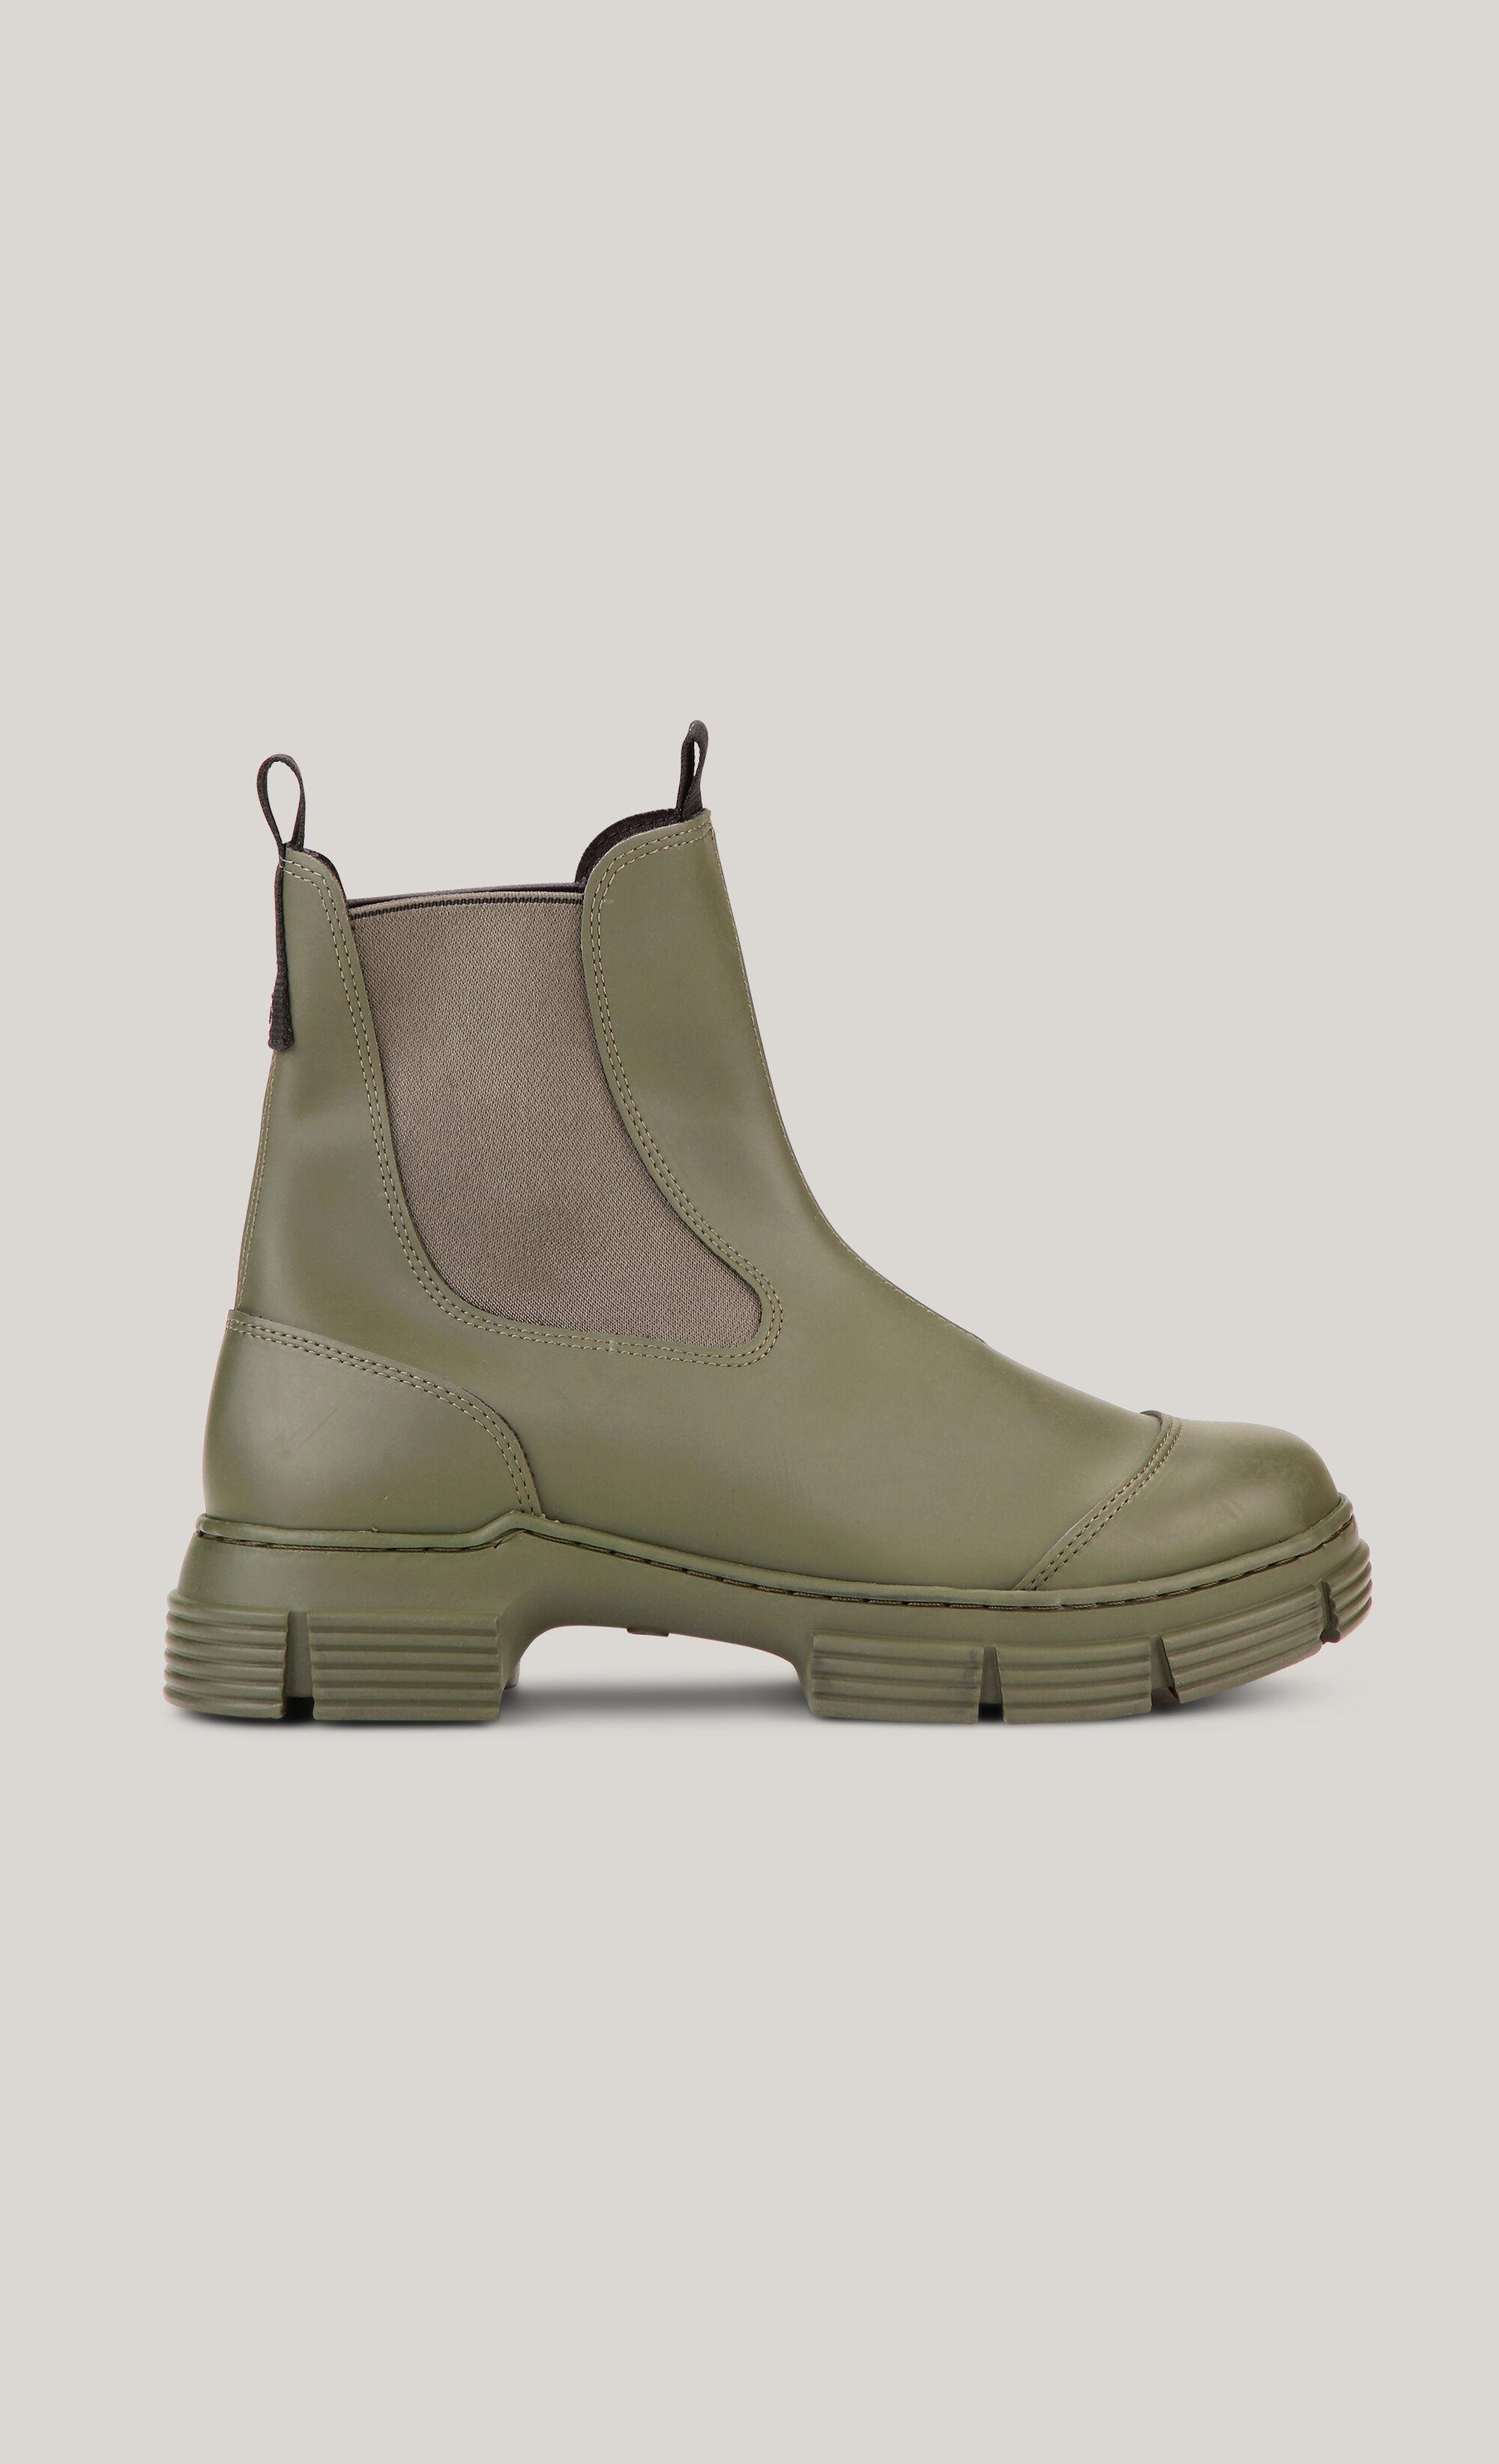 Recycled Rubber City Boot